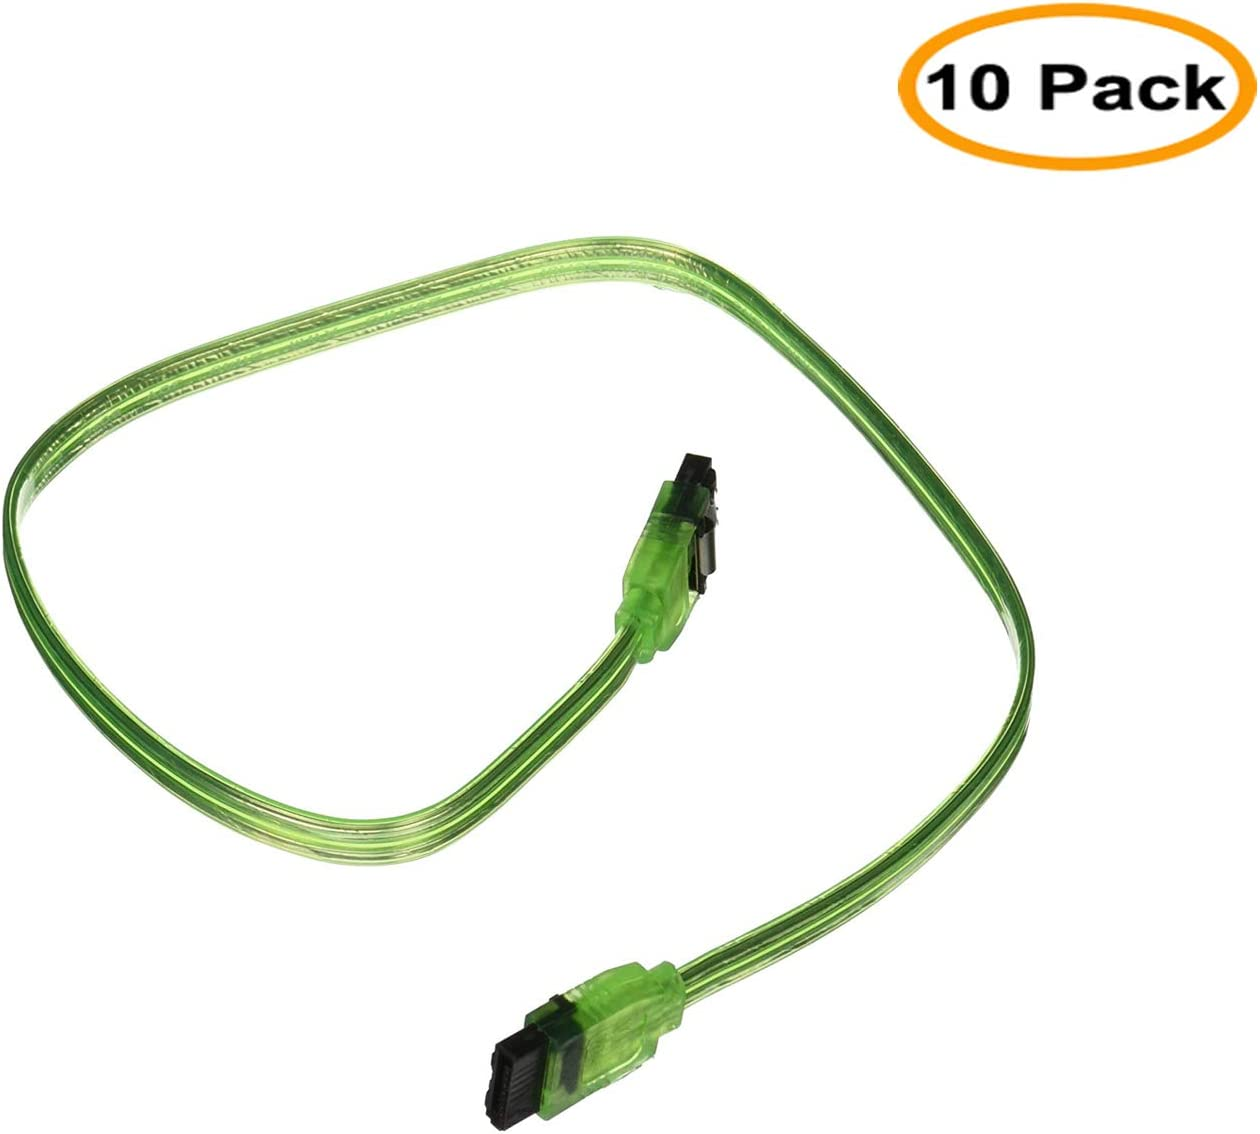 24 SATA 6Gbps Cable with Locking Latch 90 Degree to 180 Degree Black CNE534169 C/&E 2 Pack